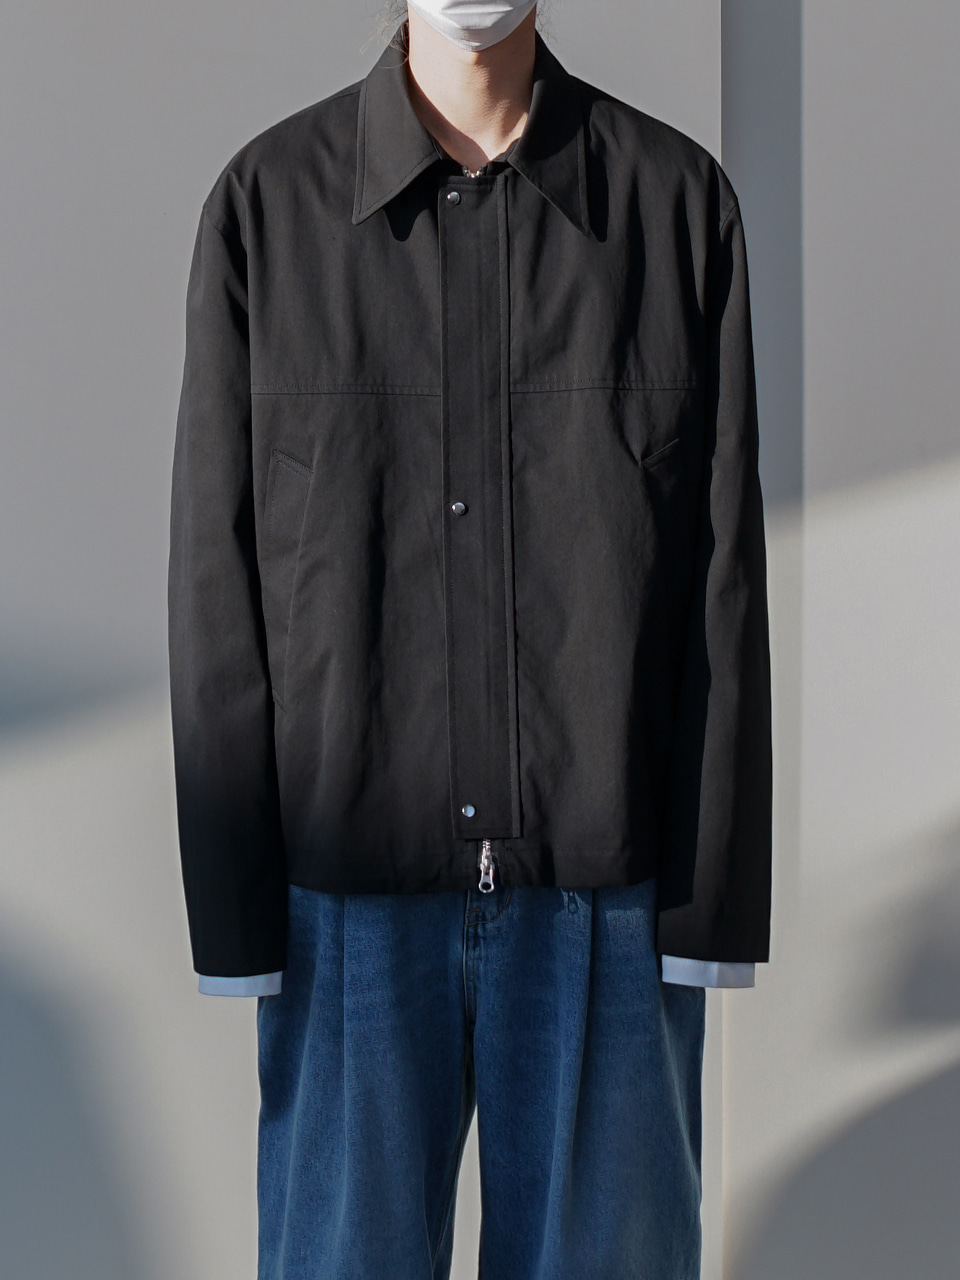 Eight Count Jacket (2color)